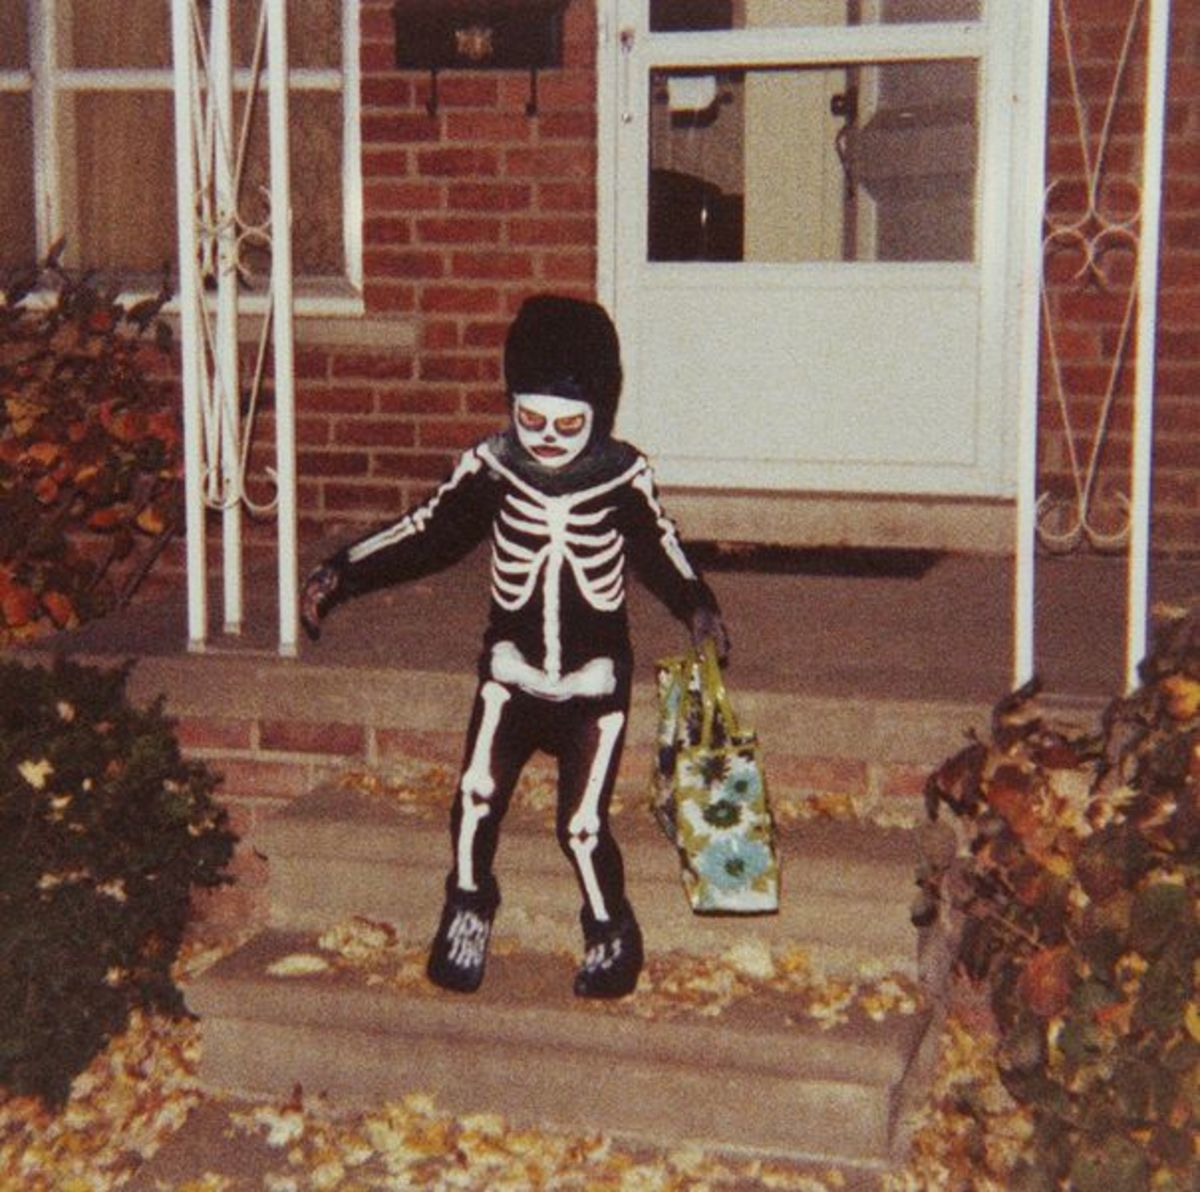 Small Trick or Treater in Spooky Costume Bears Away Spoils. This photo was taken in the US, but is reasonably typical of what might be seen in the UK .